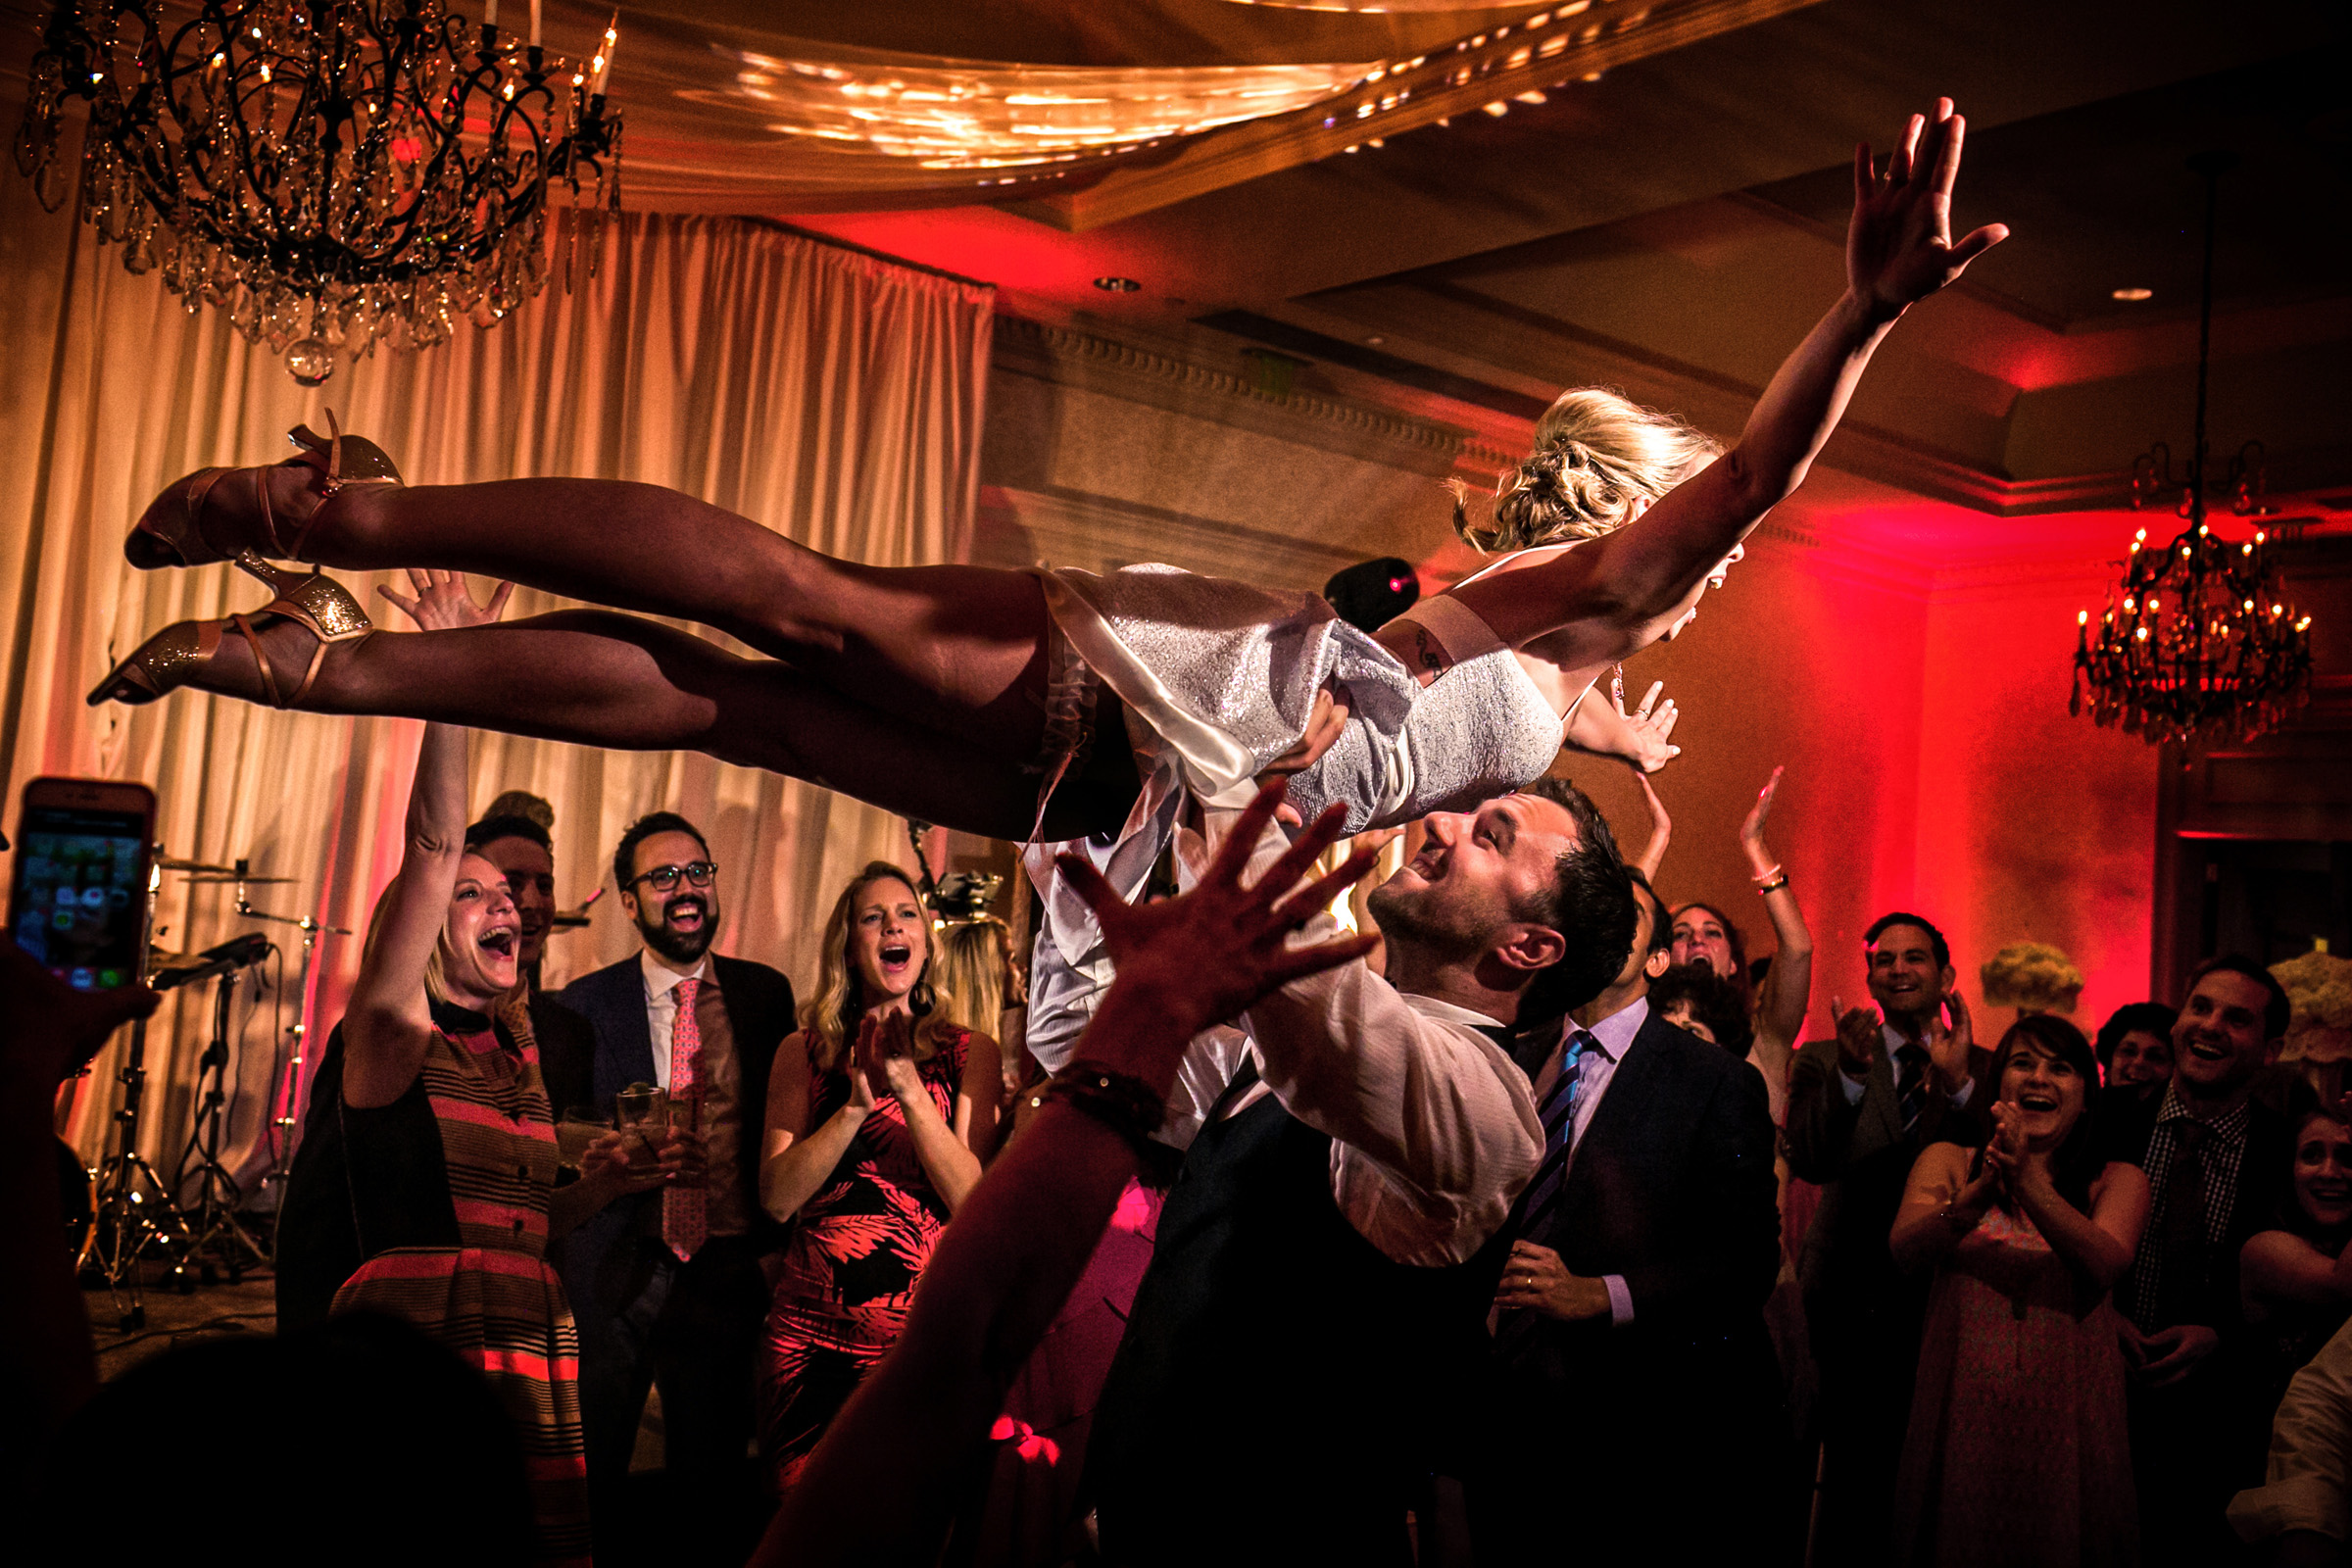 aerial-bride-at-dance-party-christophe-viseux-photography